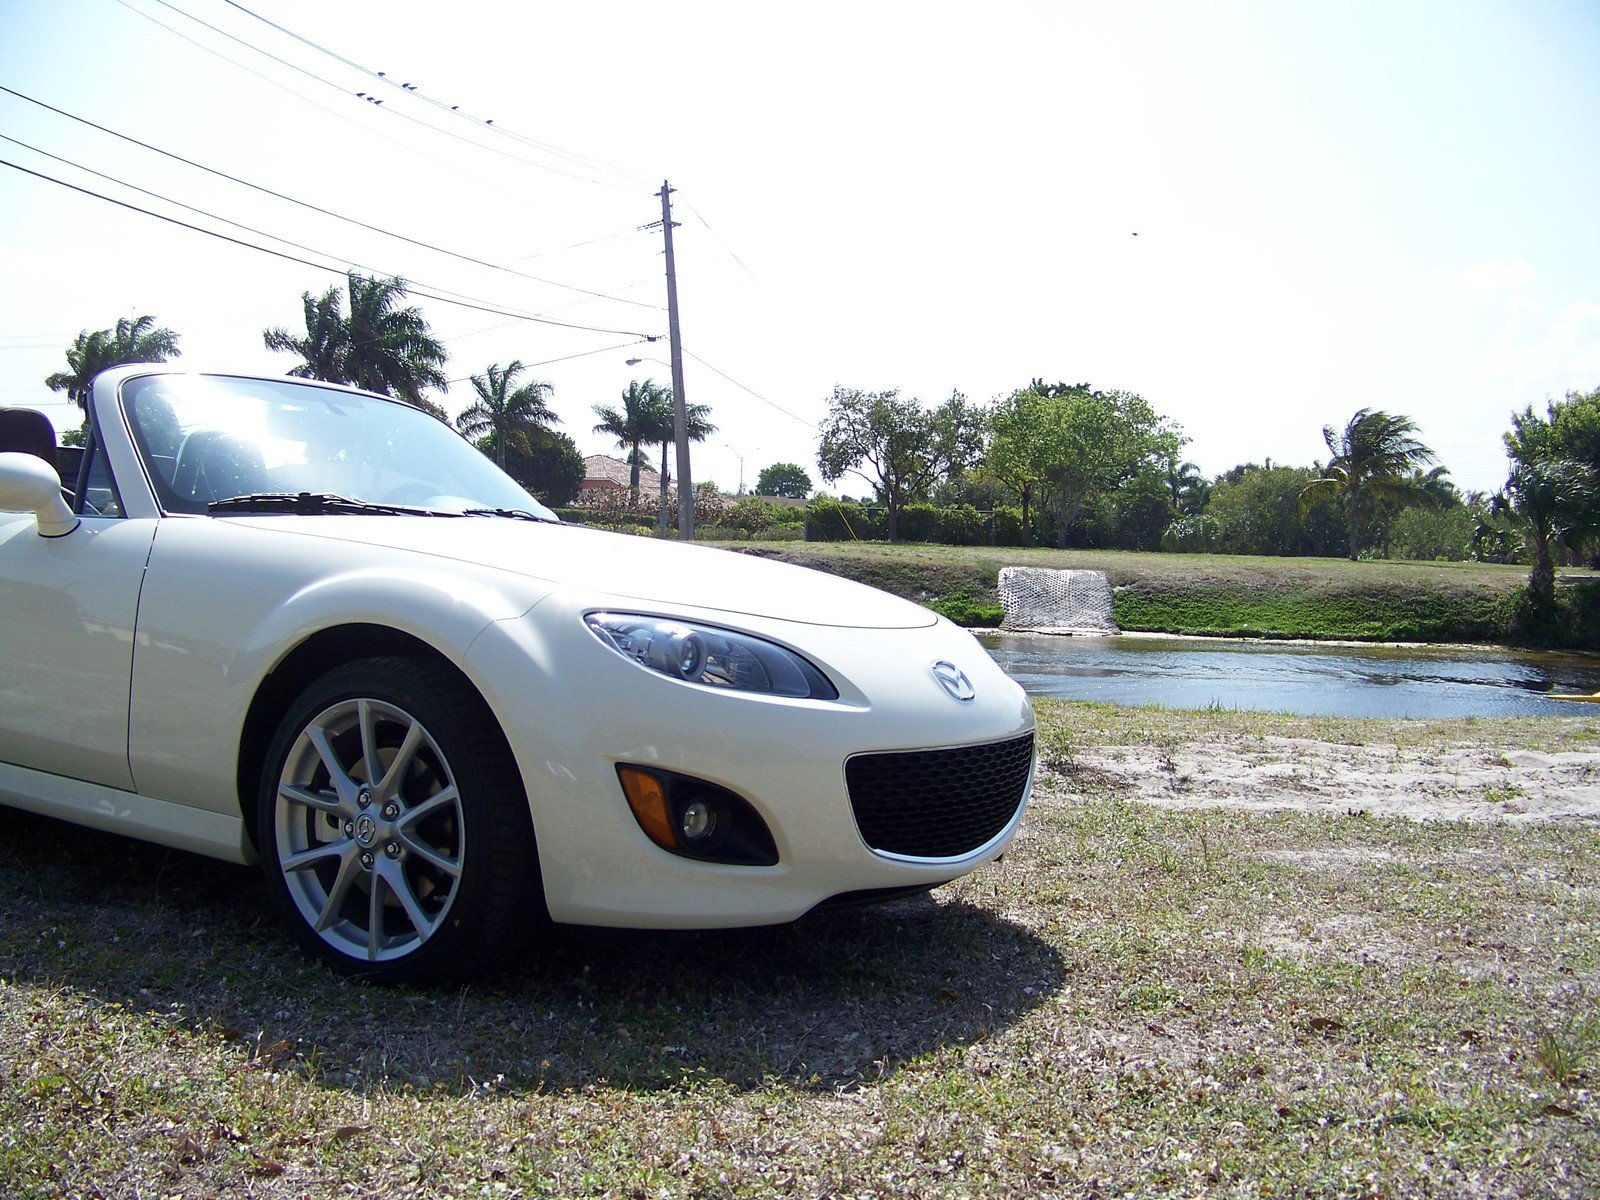 2009 mazda mx 5 miata grand touring picture 301019 car review top speed. Black Bedroom Furniture Sets. Home Design Ideas